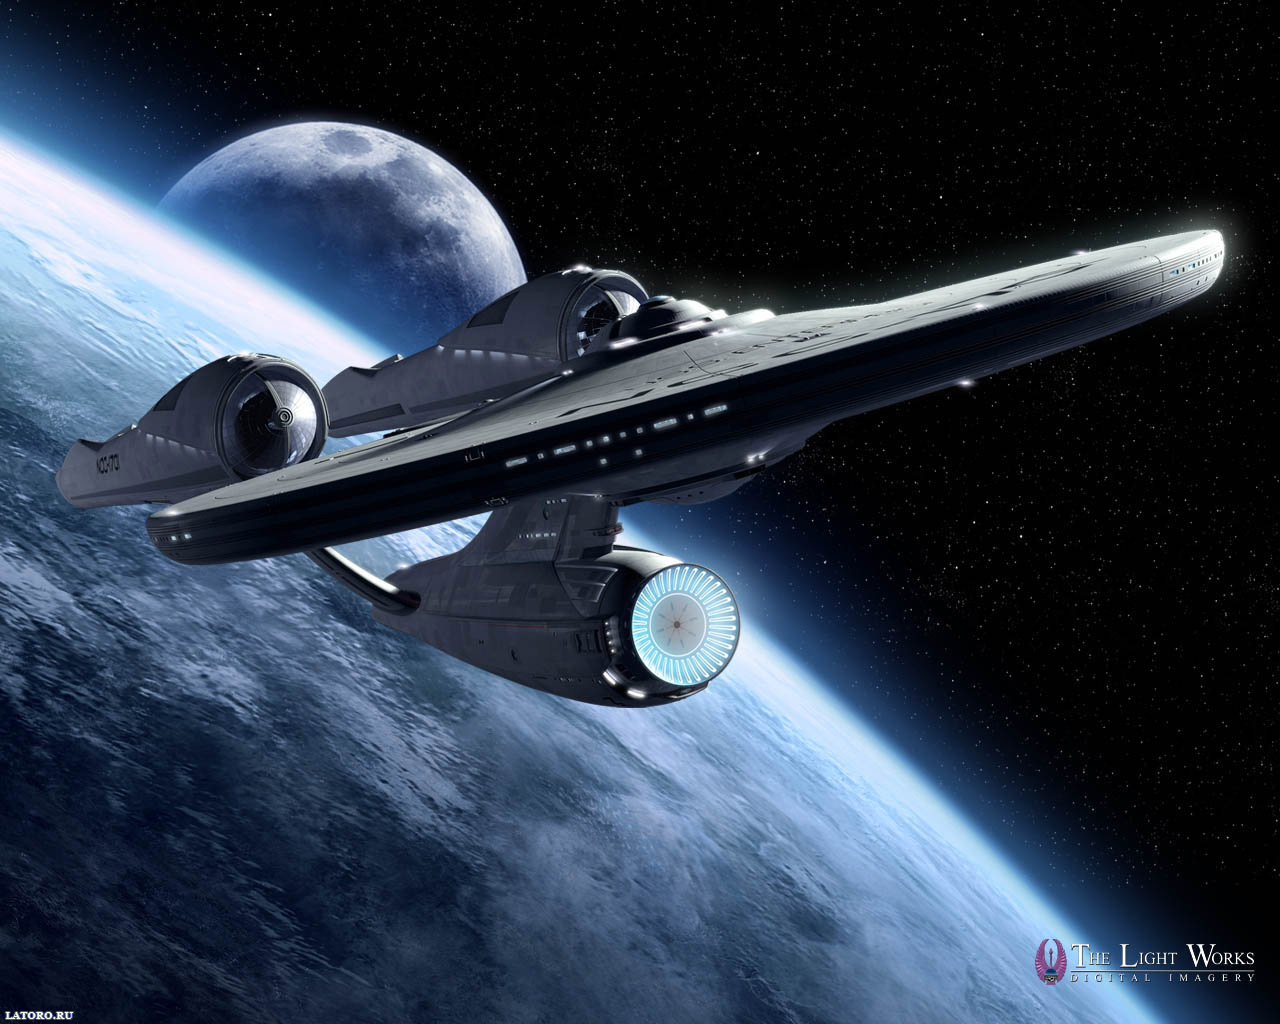 75] Star Trek Desktop Wallpaper on WallpaperSafari 1280x1024